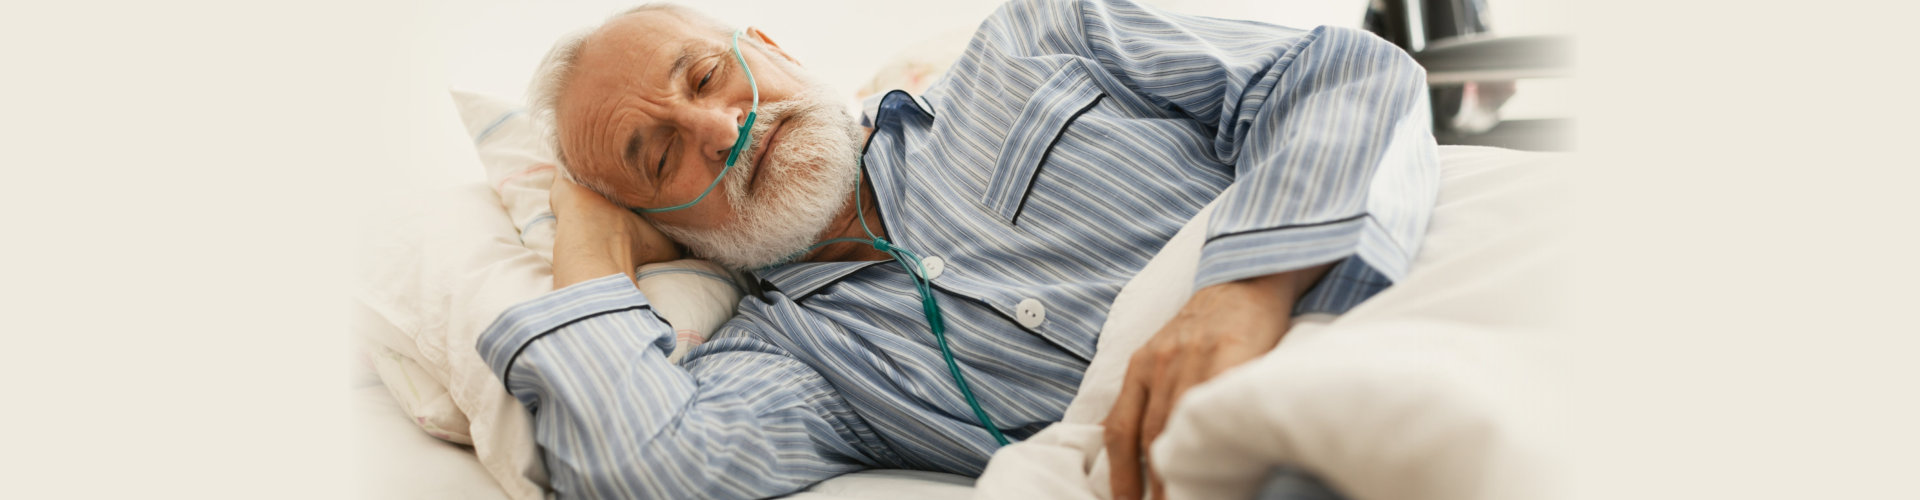 Older sick man with a oxygen mask lying